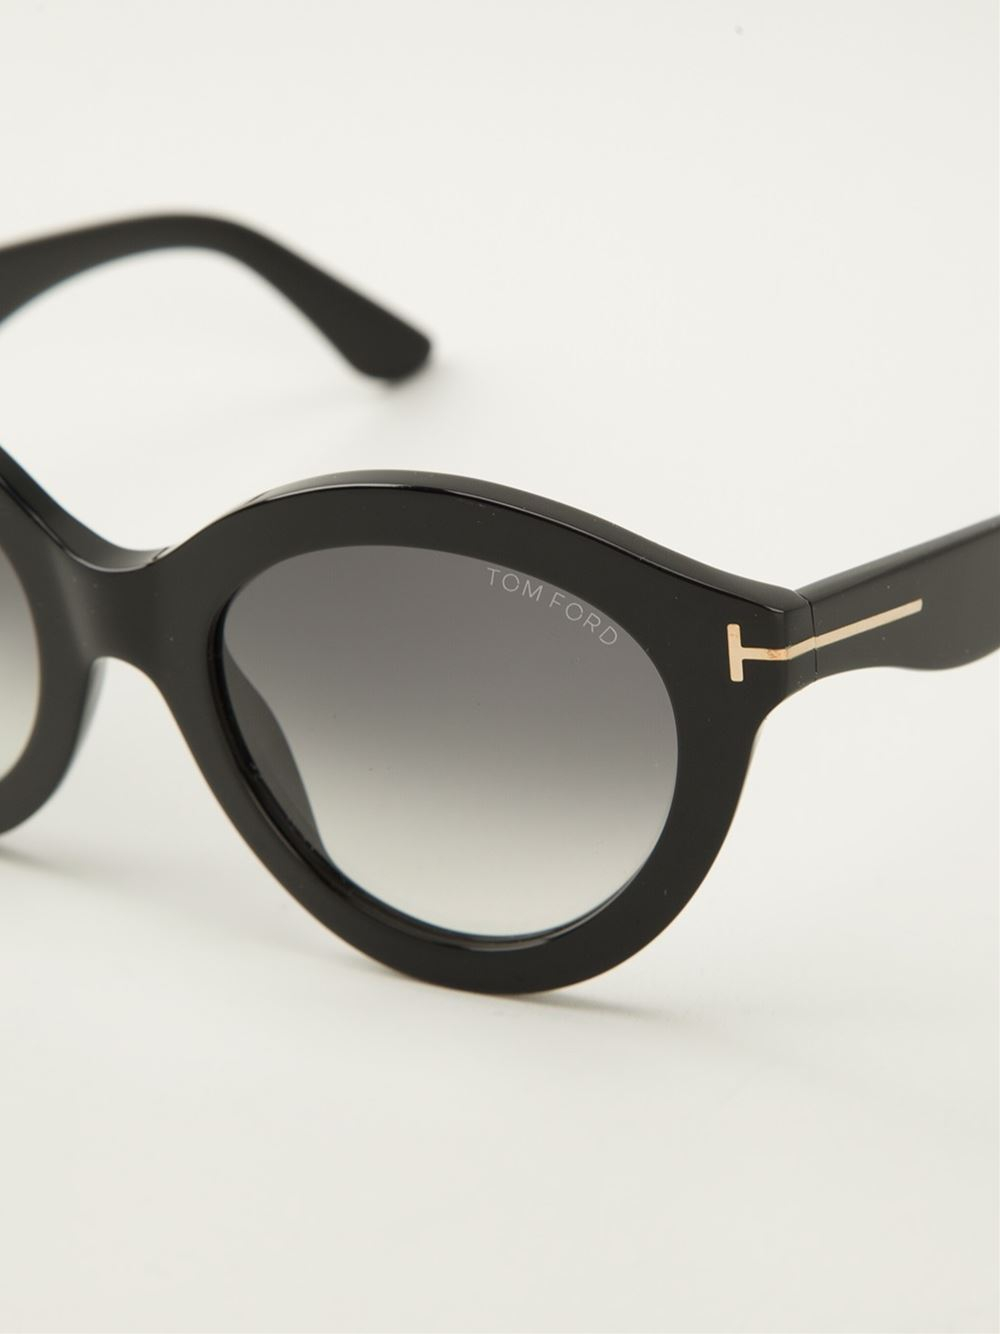 9c3740961a5 Tom Ford Small Frame Sunglasses